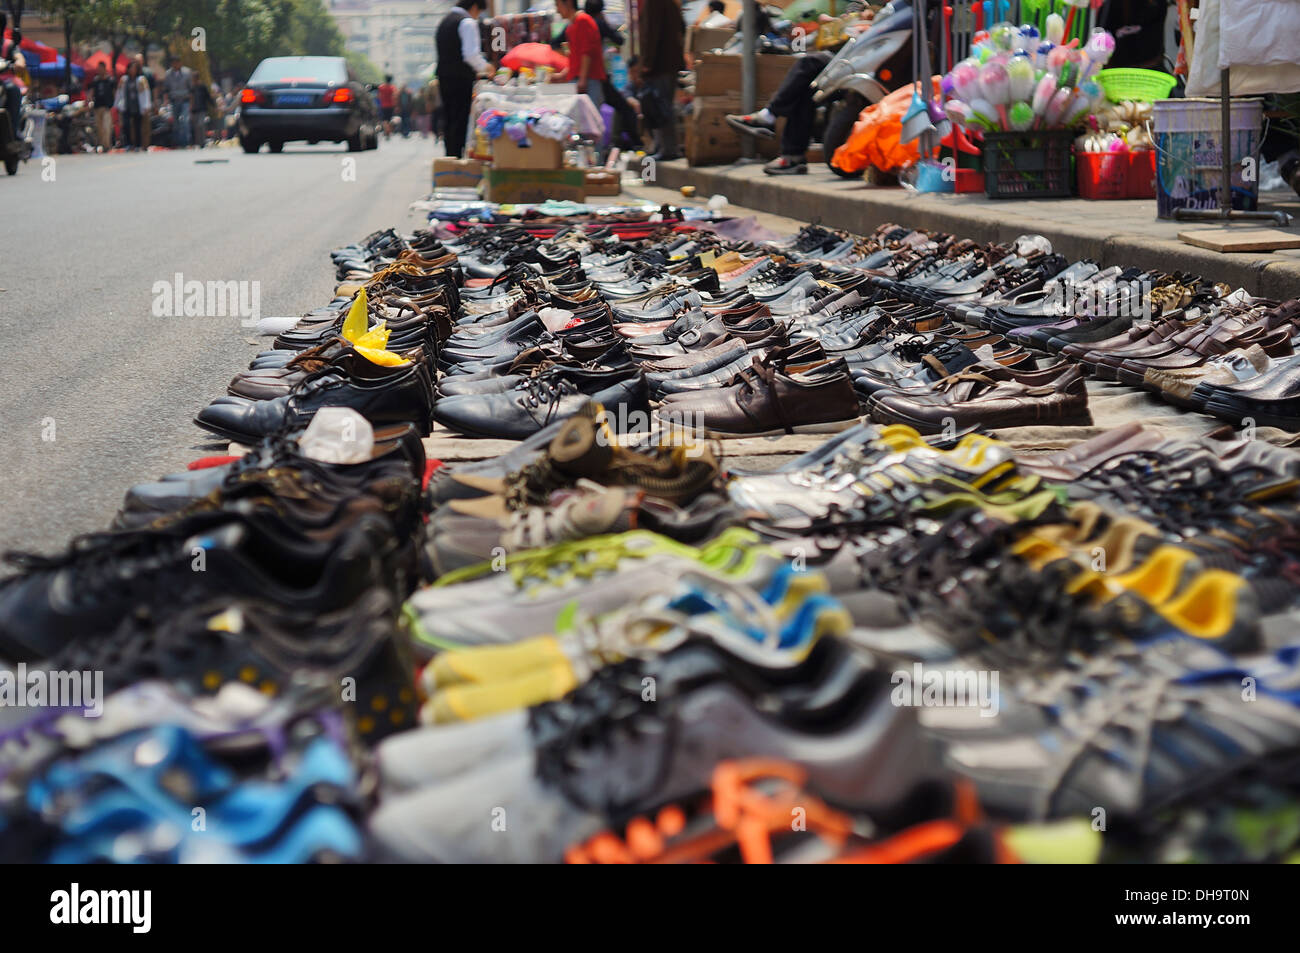 09982a7dc3 Fake Shoes China Stock Photos   Fake Shoes China Stock Images - Alamy